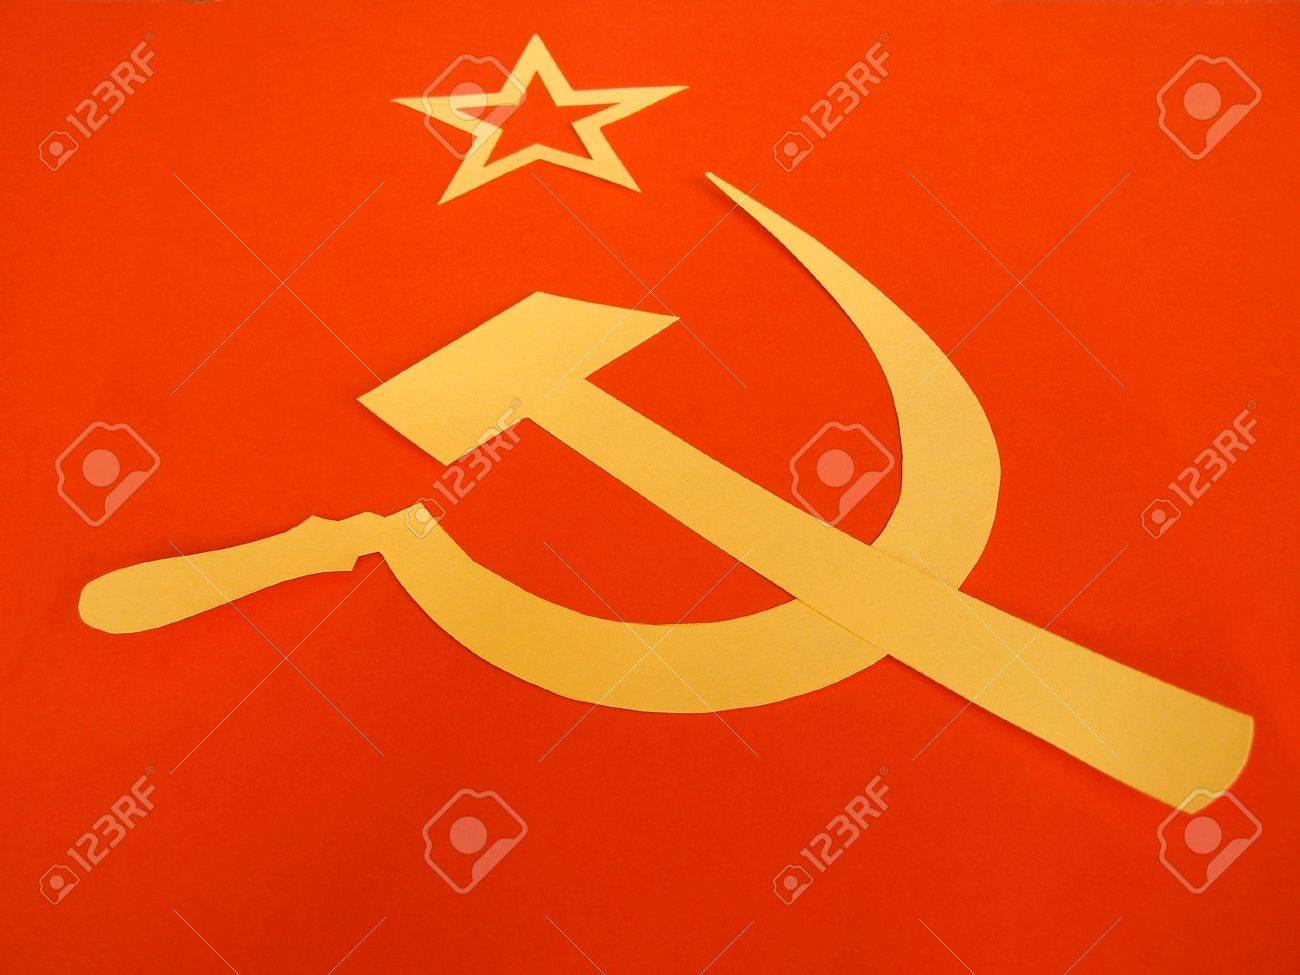 Communist cccp flag with hammer and sickle symbols of communism communist cccp flag with hammer and sickle symbols of communism yellow over red stock biocorpaavc Gallery